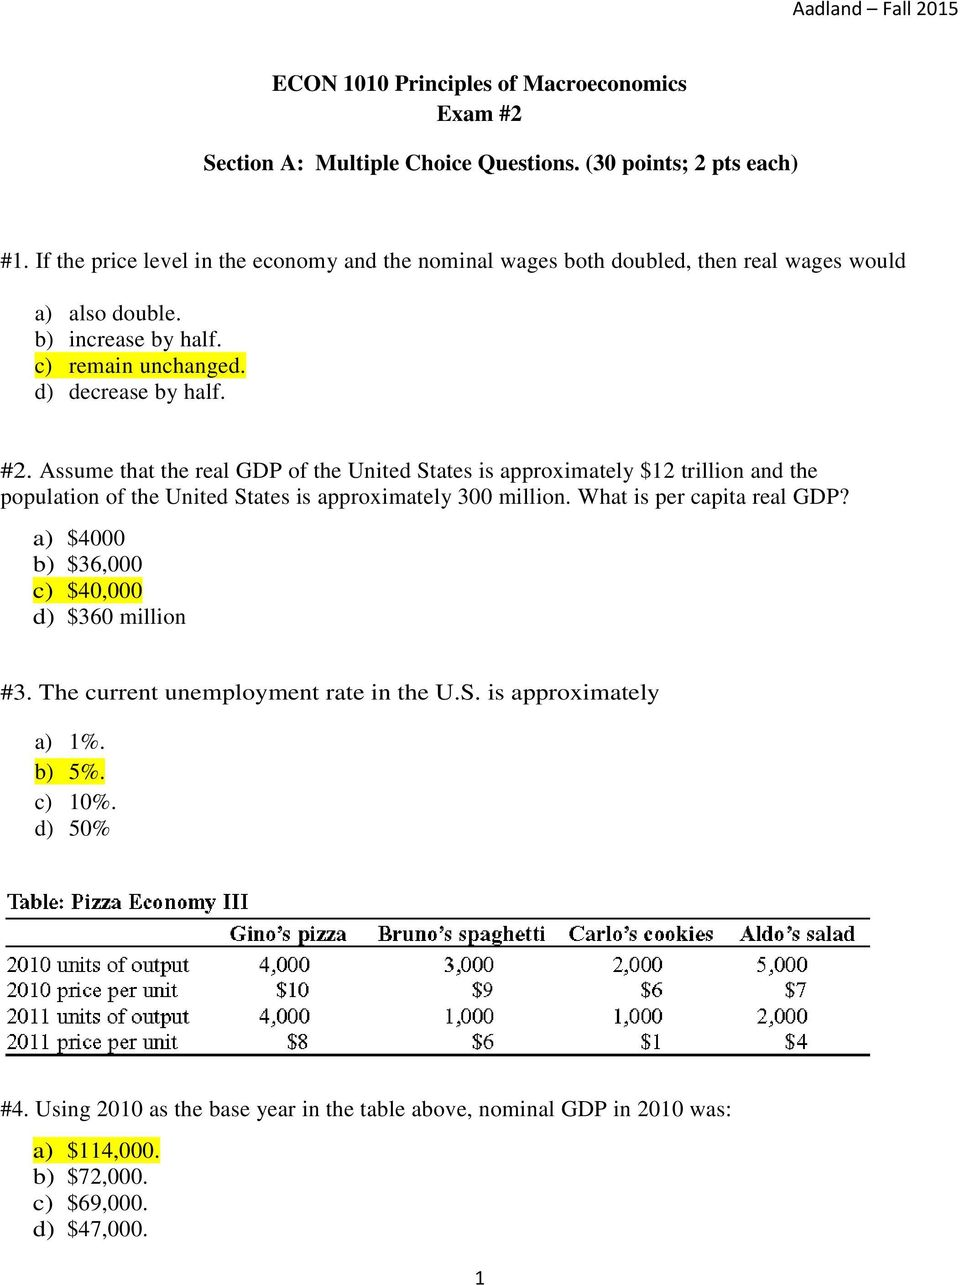 macroeconomics multiple choice questions pdf